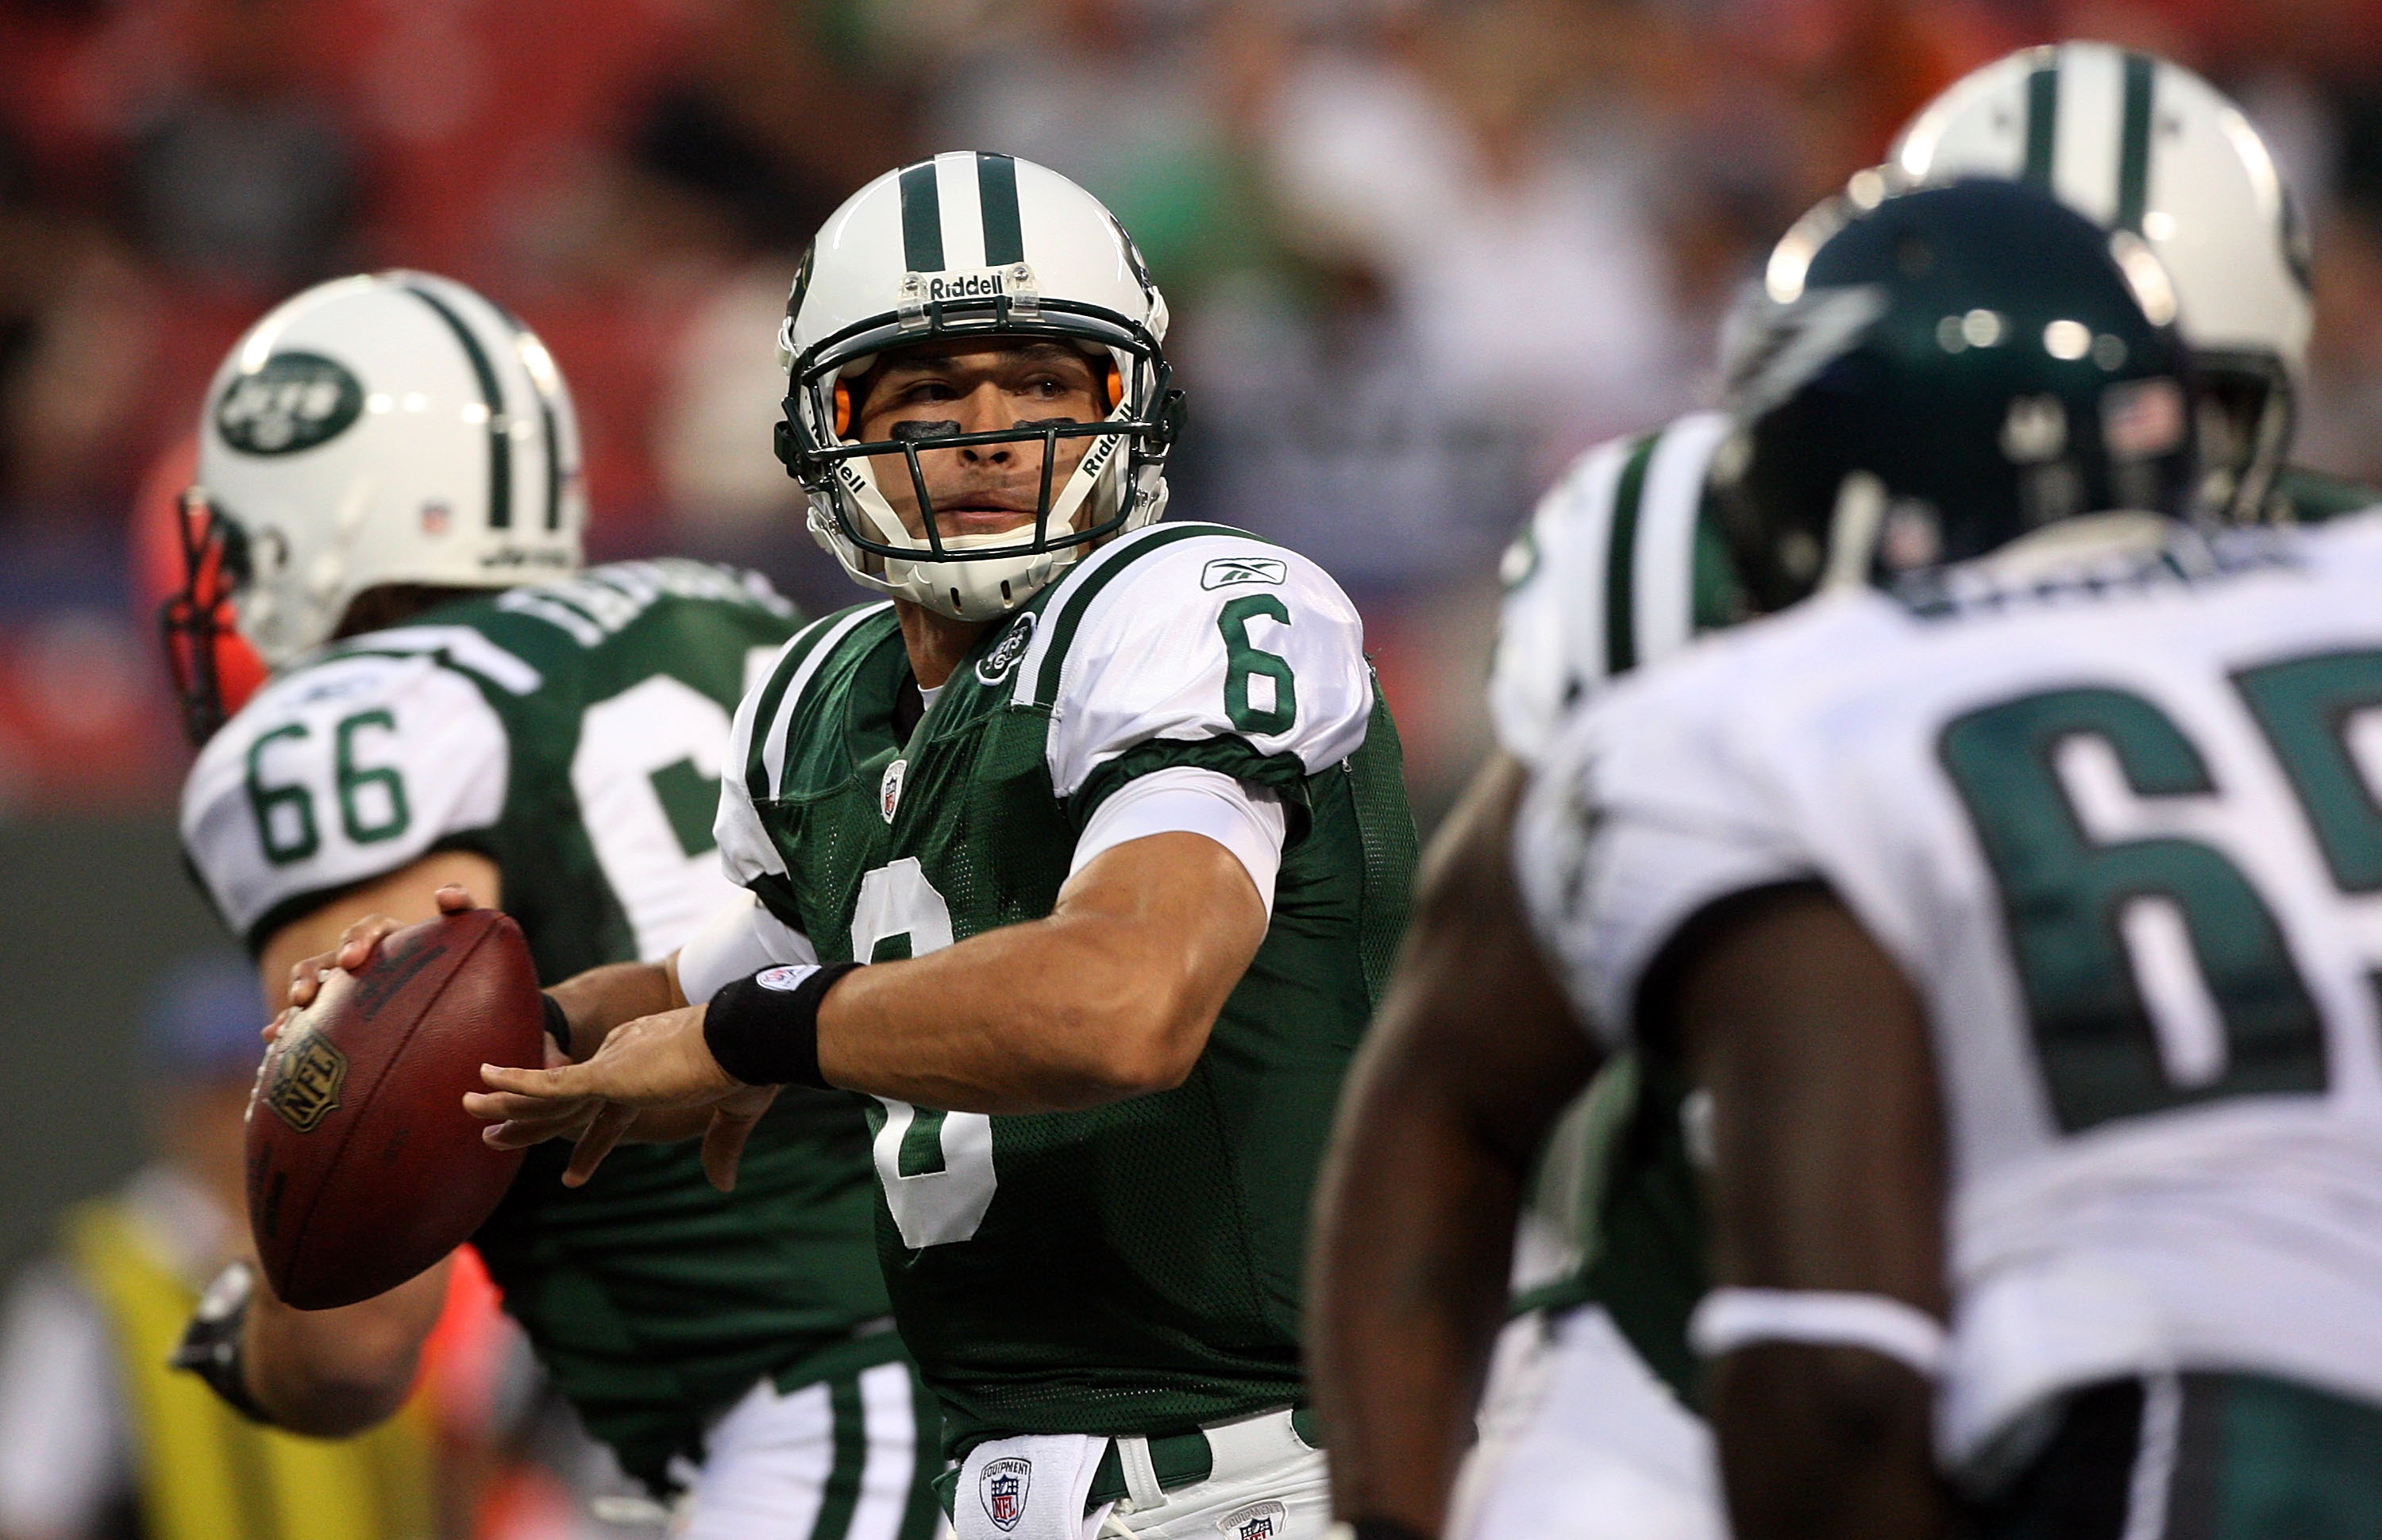 EAST RUTHERFORD, NJ - SEPTEMBER 3: Quarterback Mark Sanchez #6 of the New York Jets looks to make a pass play in the first quarter against the Philadelphia Eagles during the NFL preseason game at Giants Stadium on September 3, 2009 in East Rutherford, New